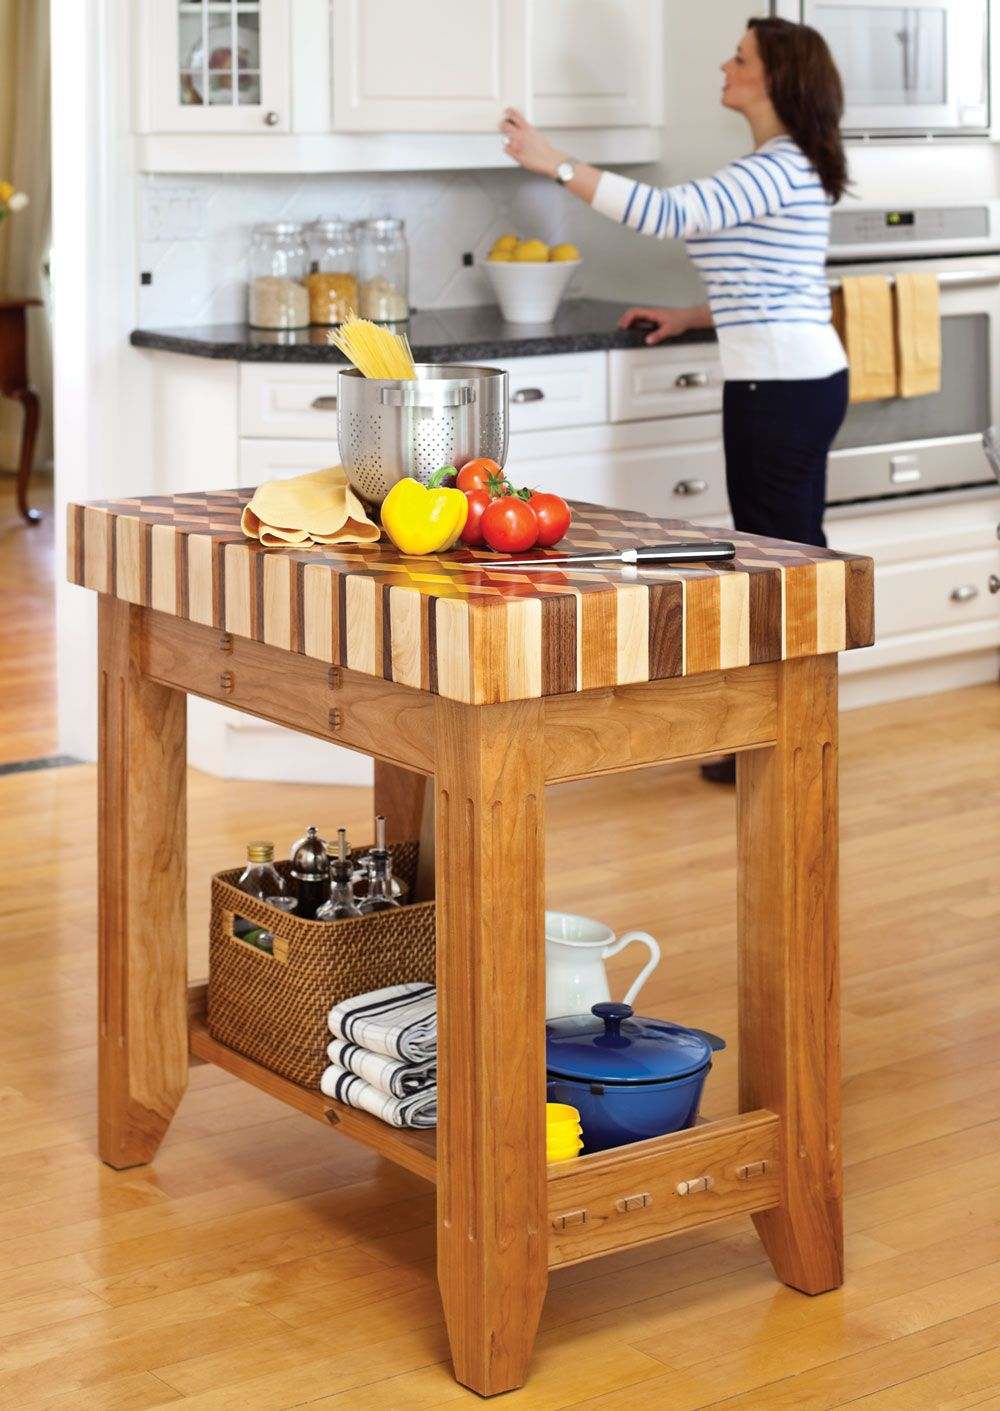 Butcher Block Island (DIY or hire someone who knows what